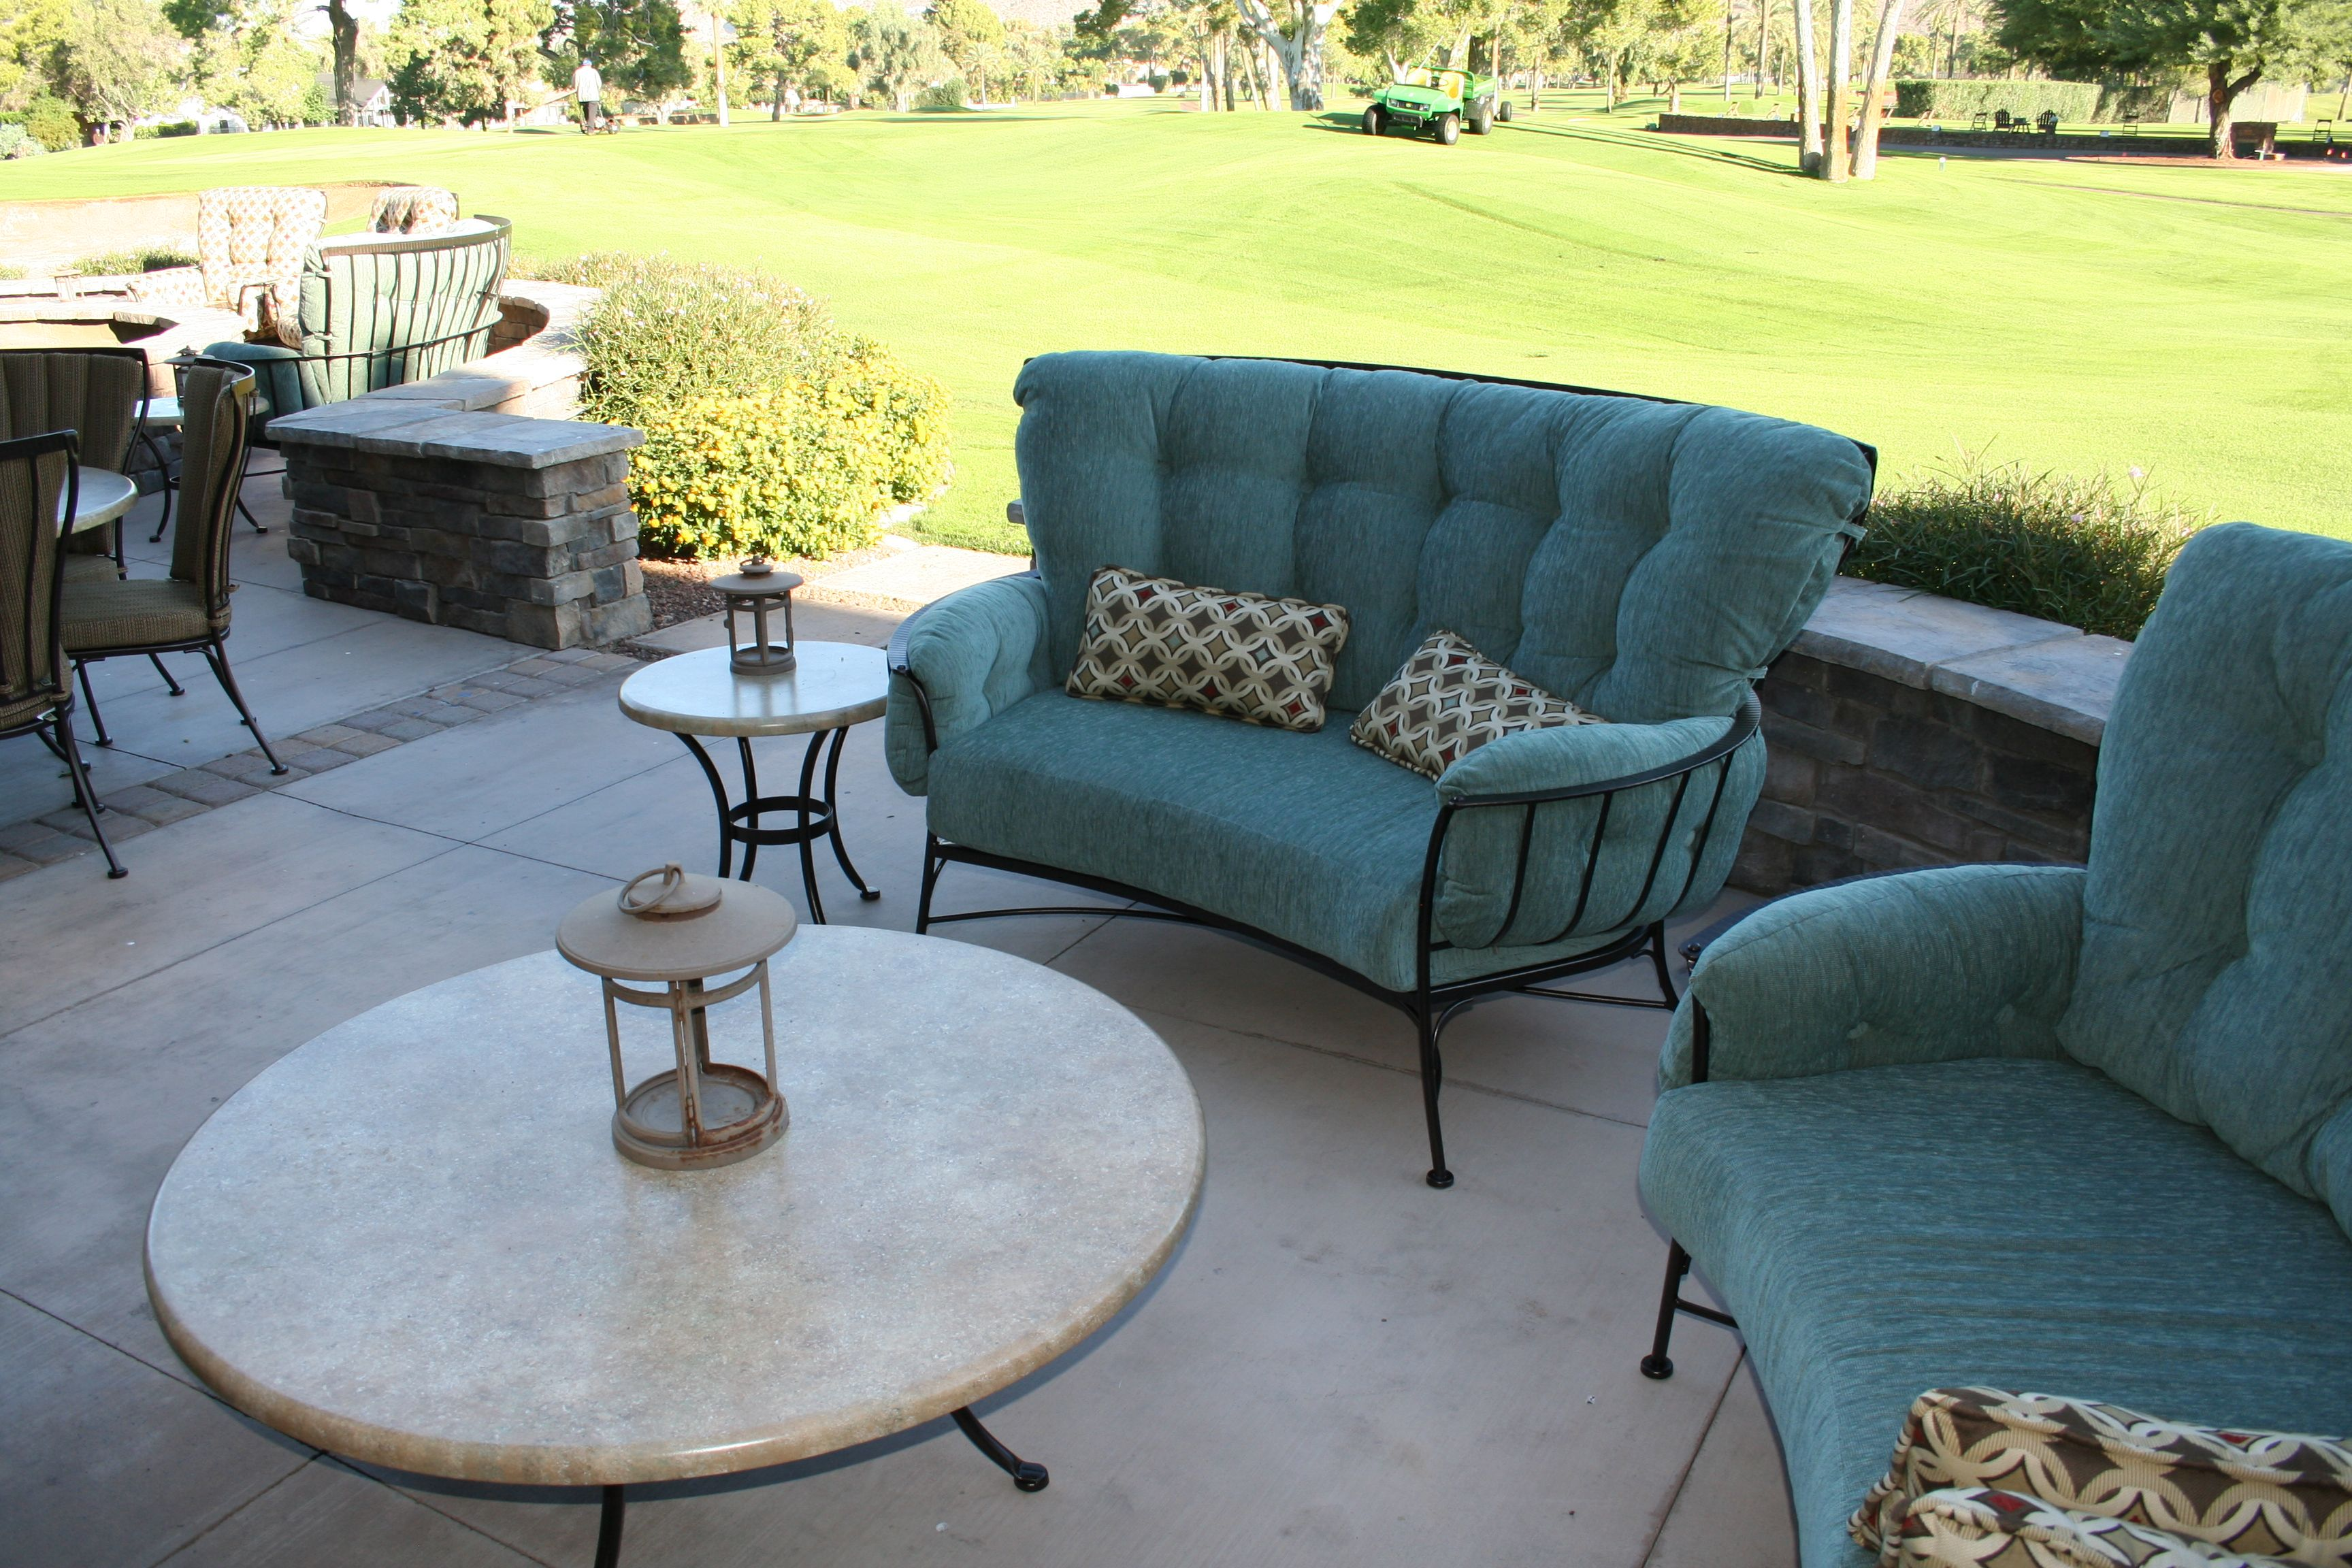 Beautiful The OW Lee Monterra Collection At The Arizona Country Club · The ArizonaOutdoor  FurnitureOutdoor ...